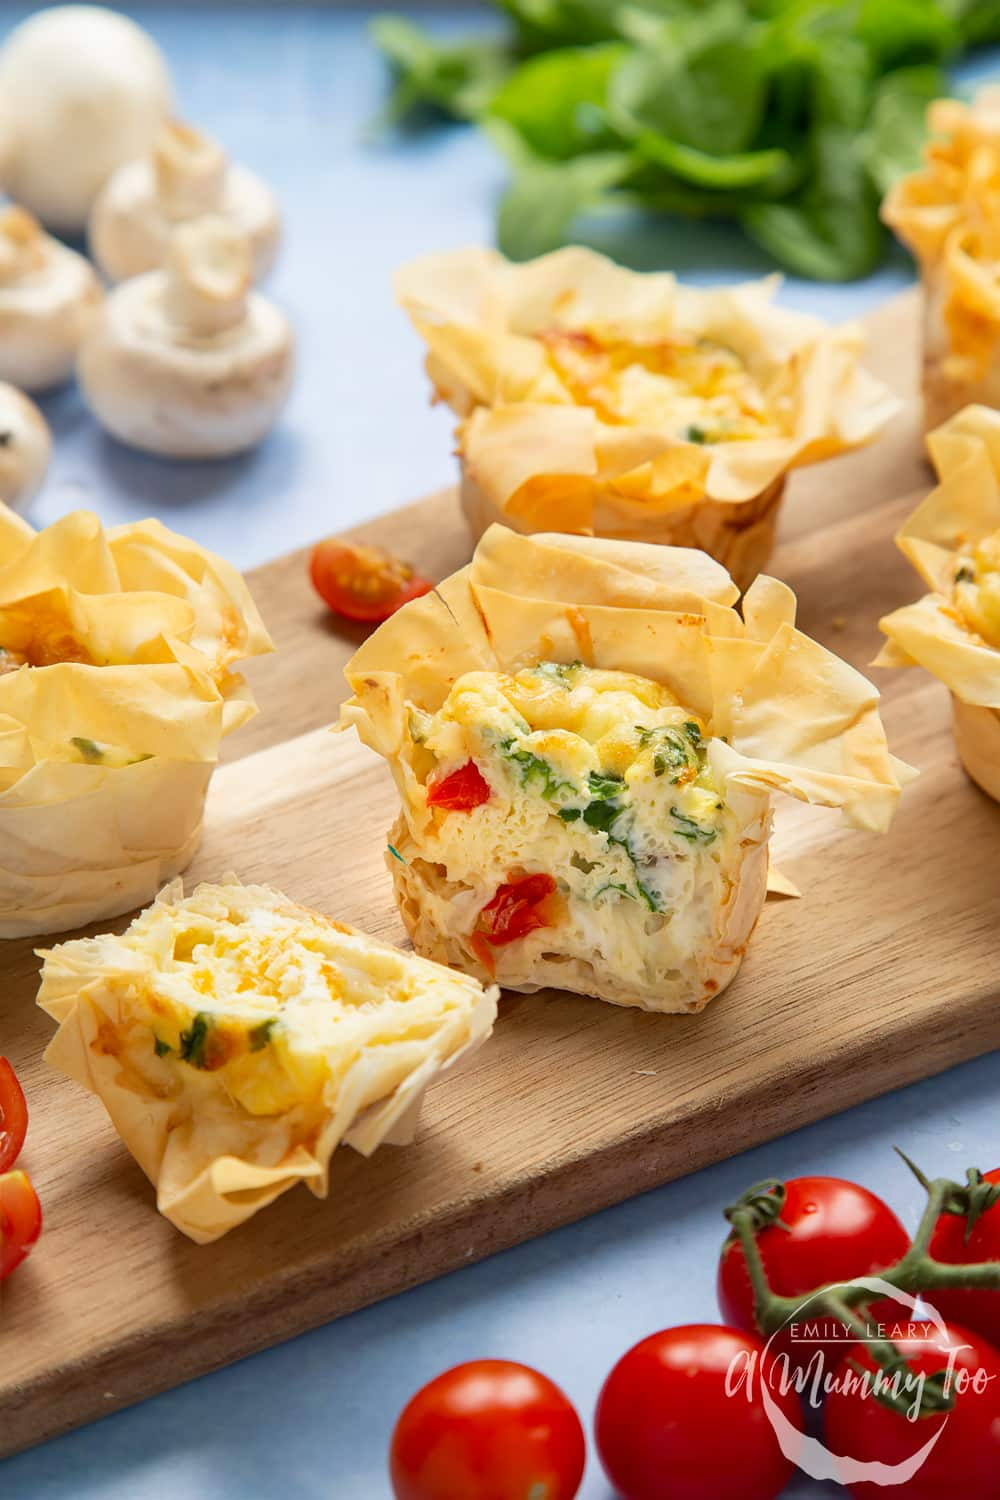 Filo pastry mini quiches - cut open to show the cooked filling with pieces of tomato and spinach.